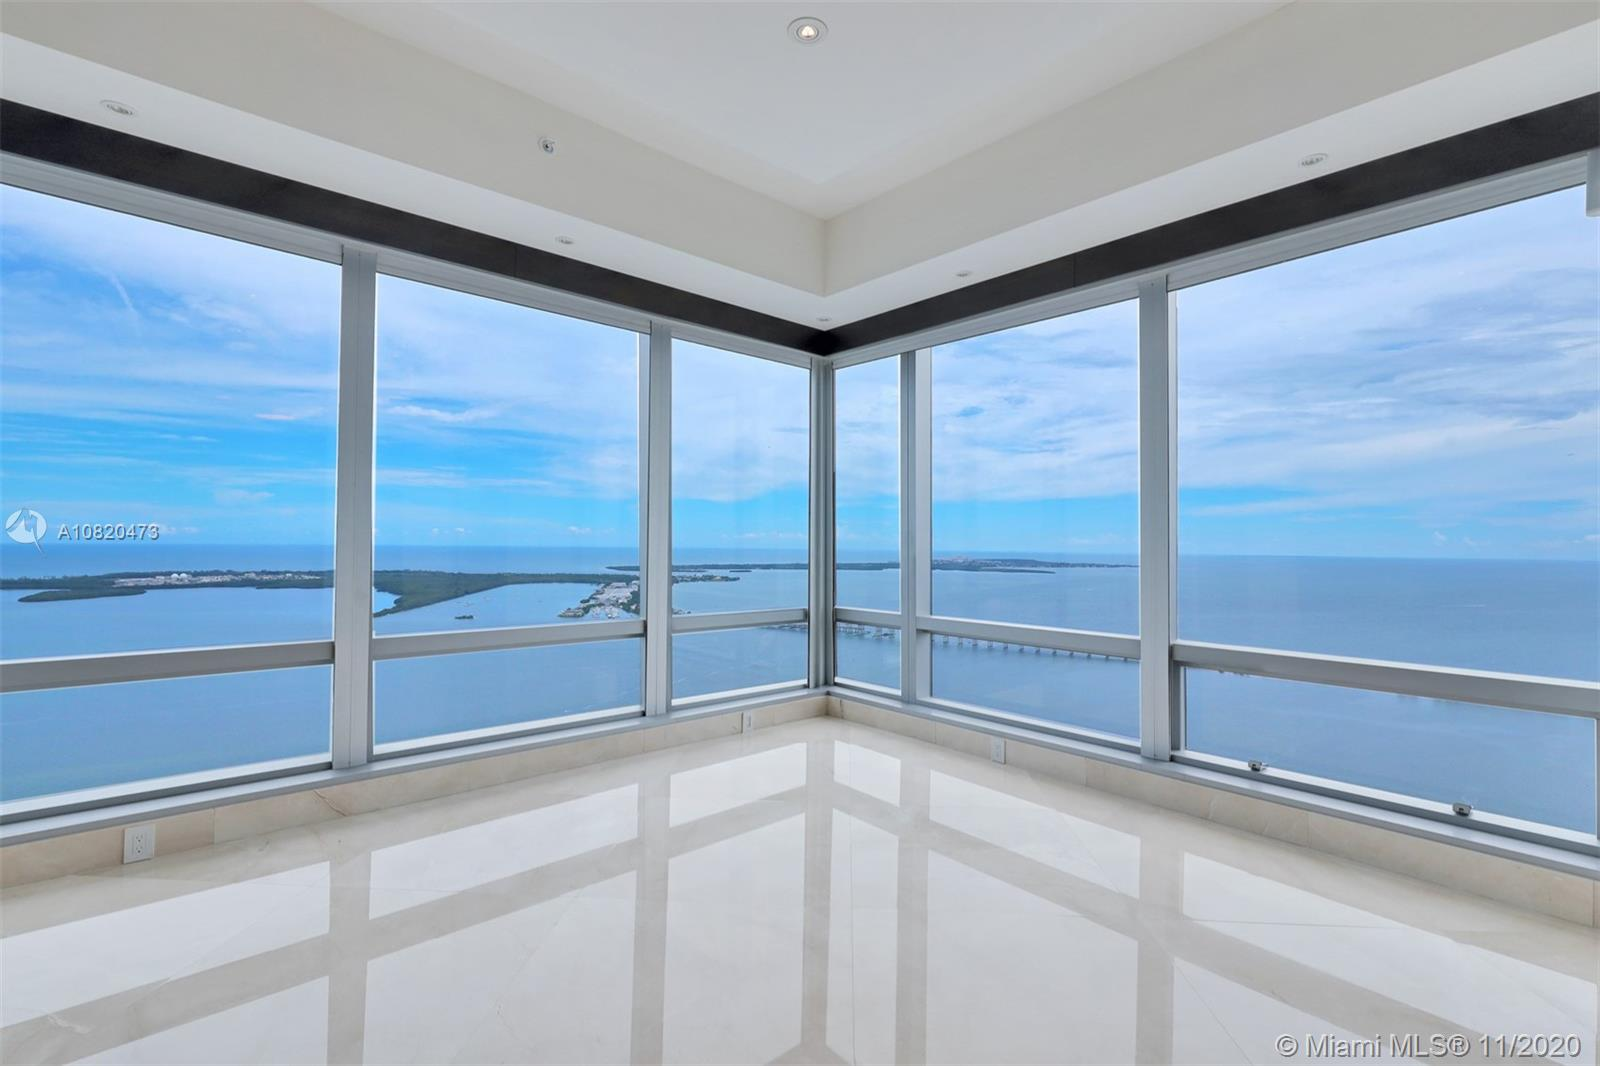 BEAUTIFUL F LINE HIGH FLOOR OFERRING MAGNIFICENT VIEWS - MARBLE THROUGHT & WOOD I N BEDROOOMS - FULLY RENOVATED . MUST SEE WILLNOT LAST . BEST $ PER SF 